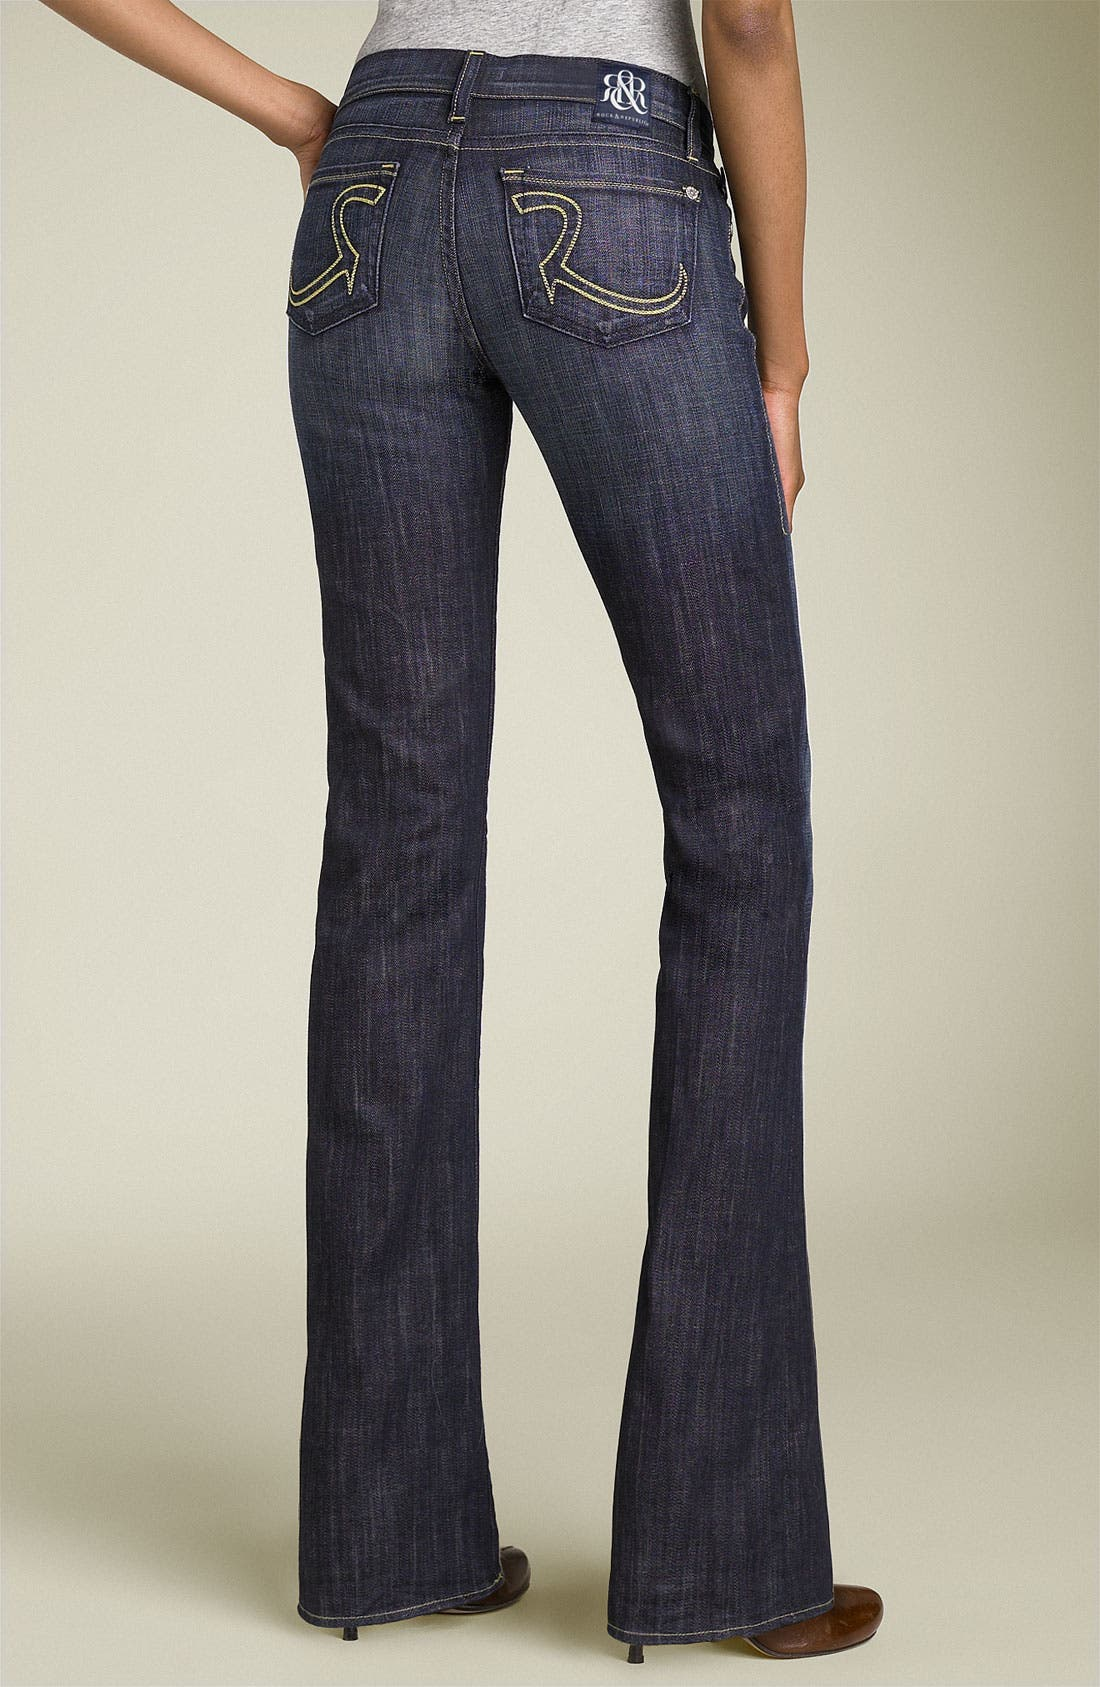 ROCK & REPUBLIC 'Kasandra' Bootcut Stretch Jeans, Main, color, 400